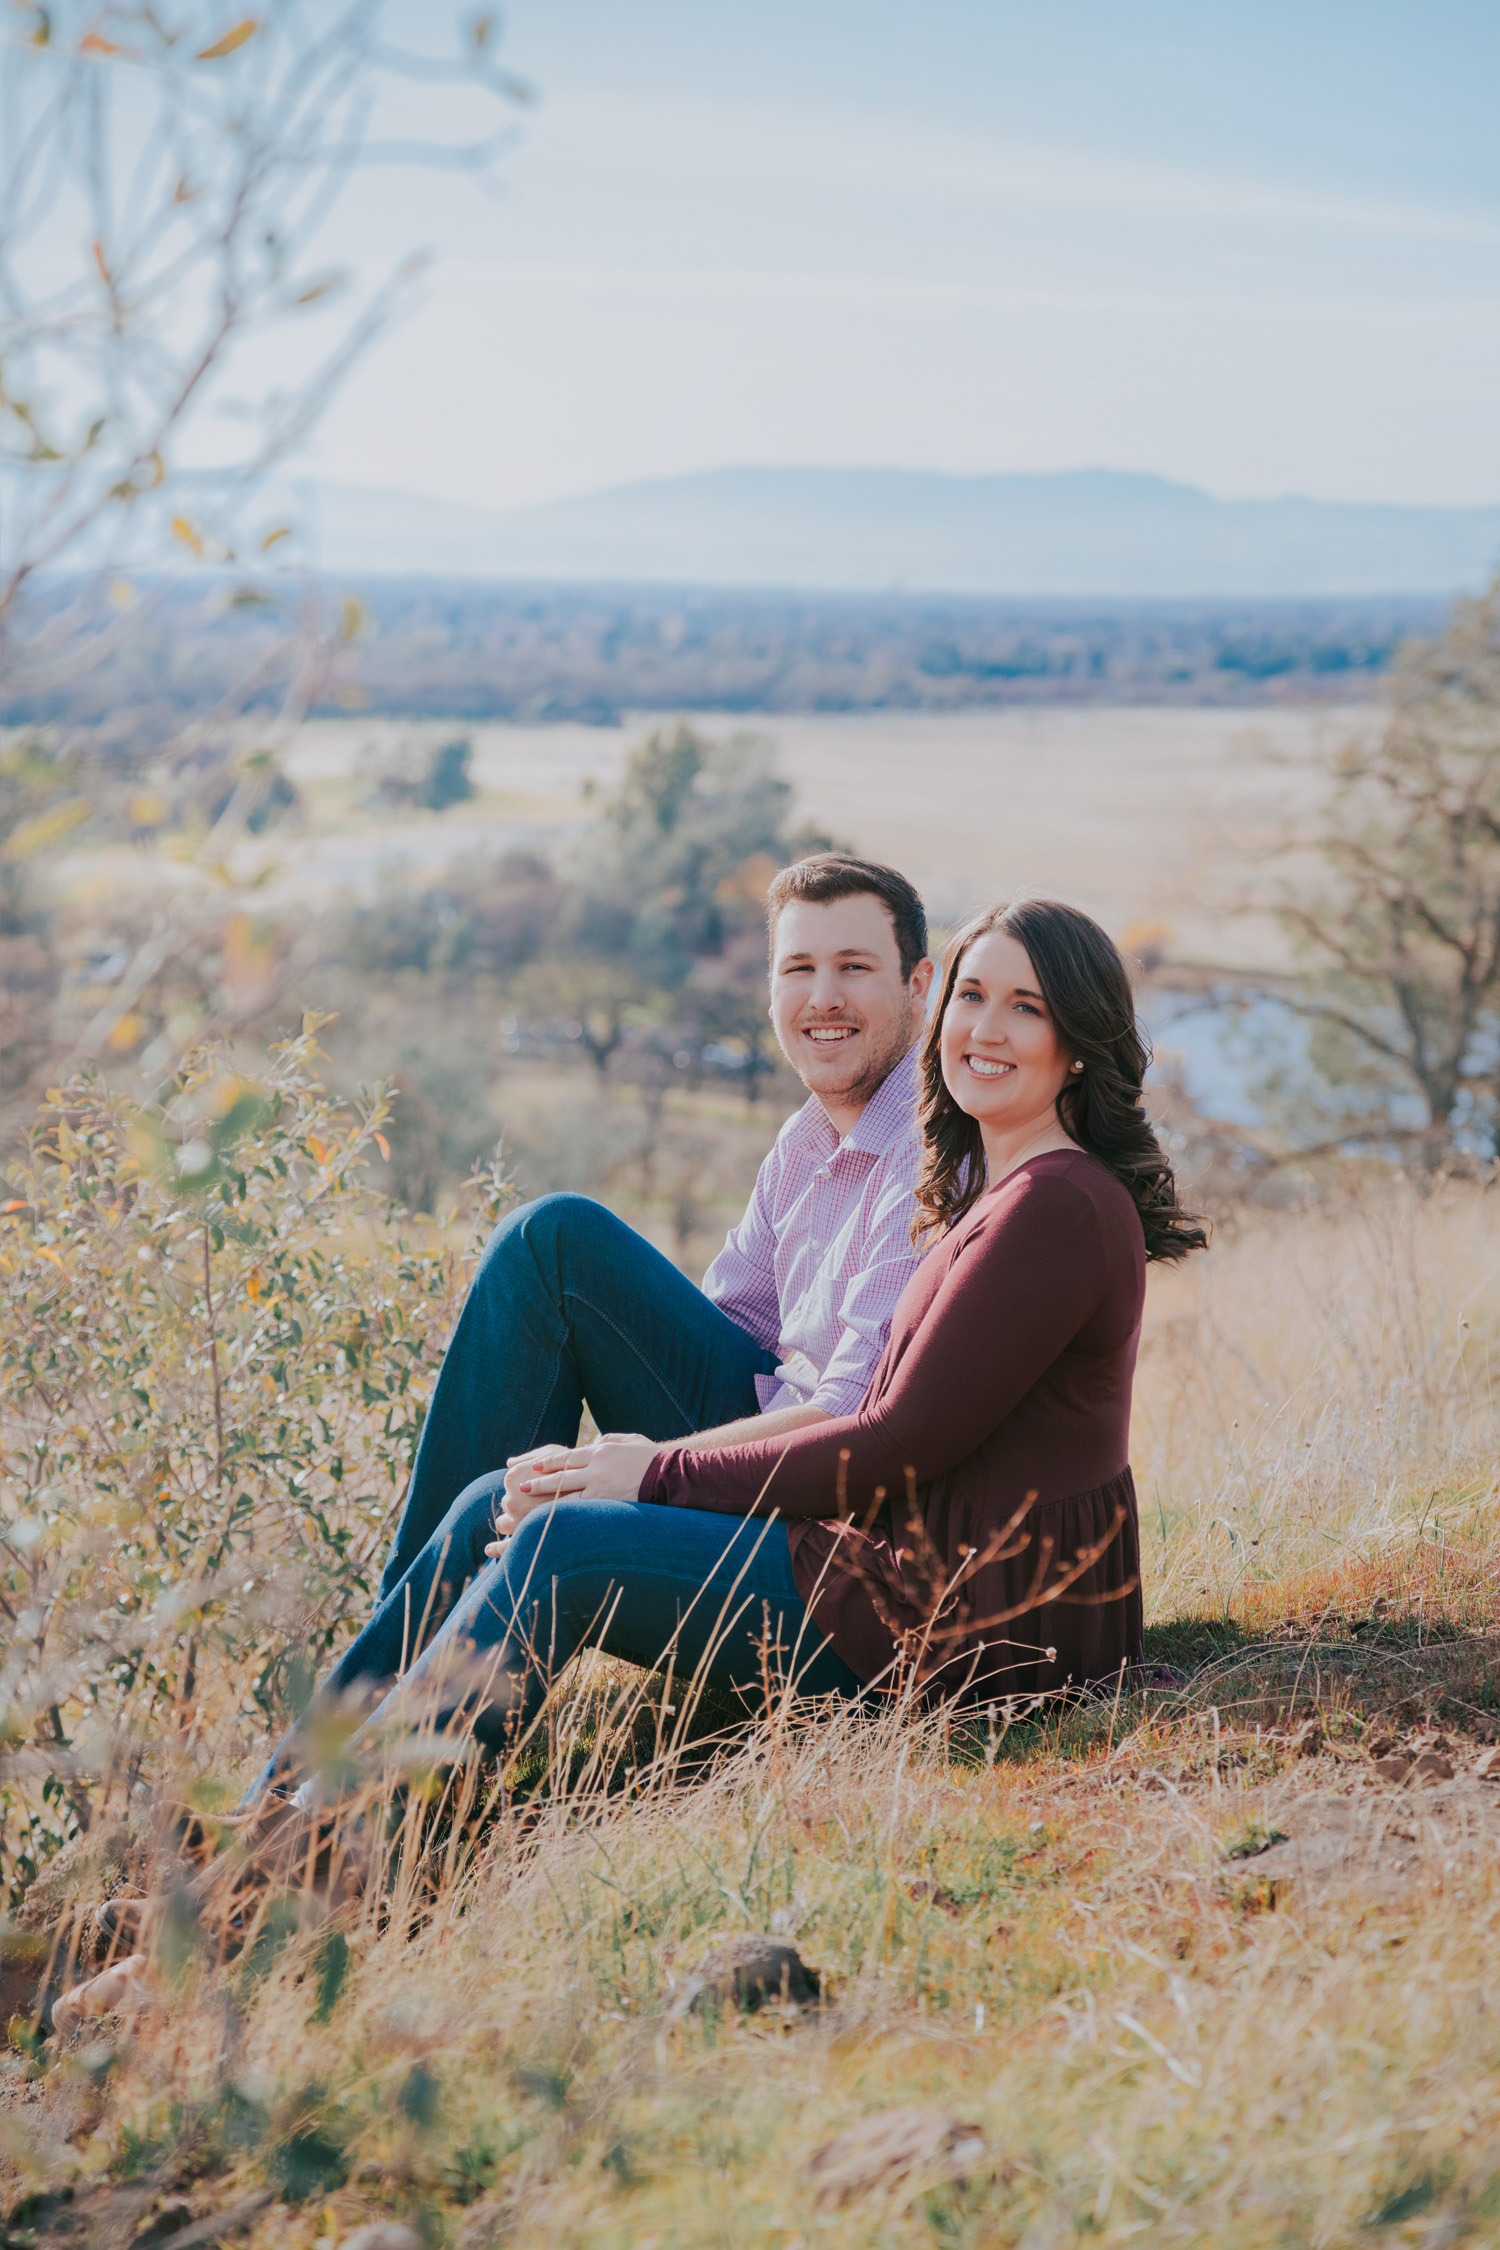 Engagement-photography-Upper-Park-Chico-CA15.jpg